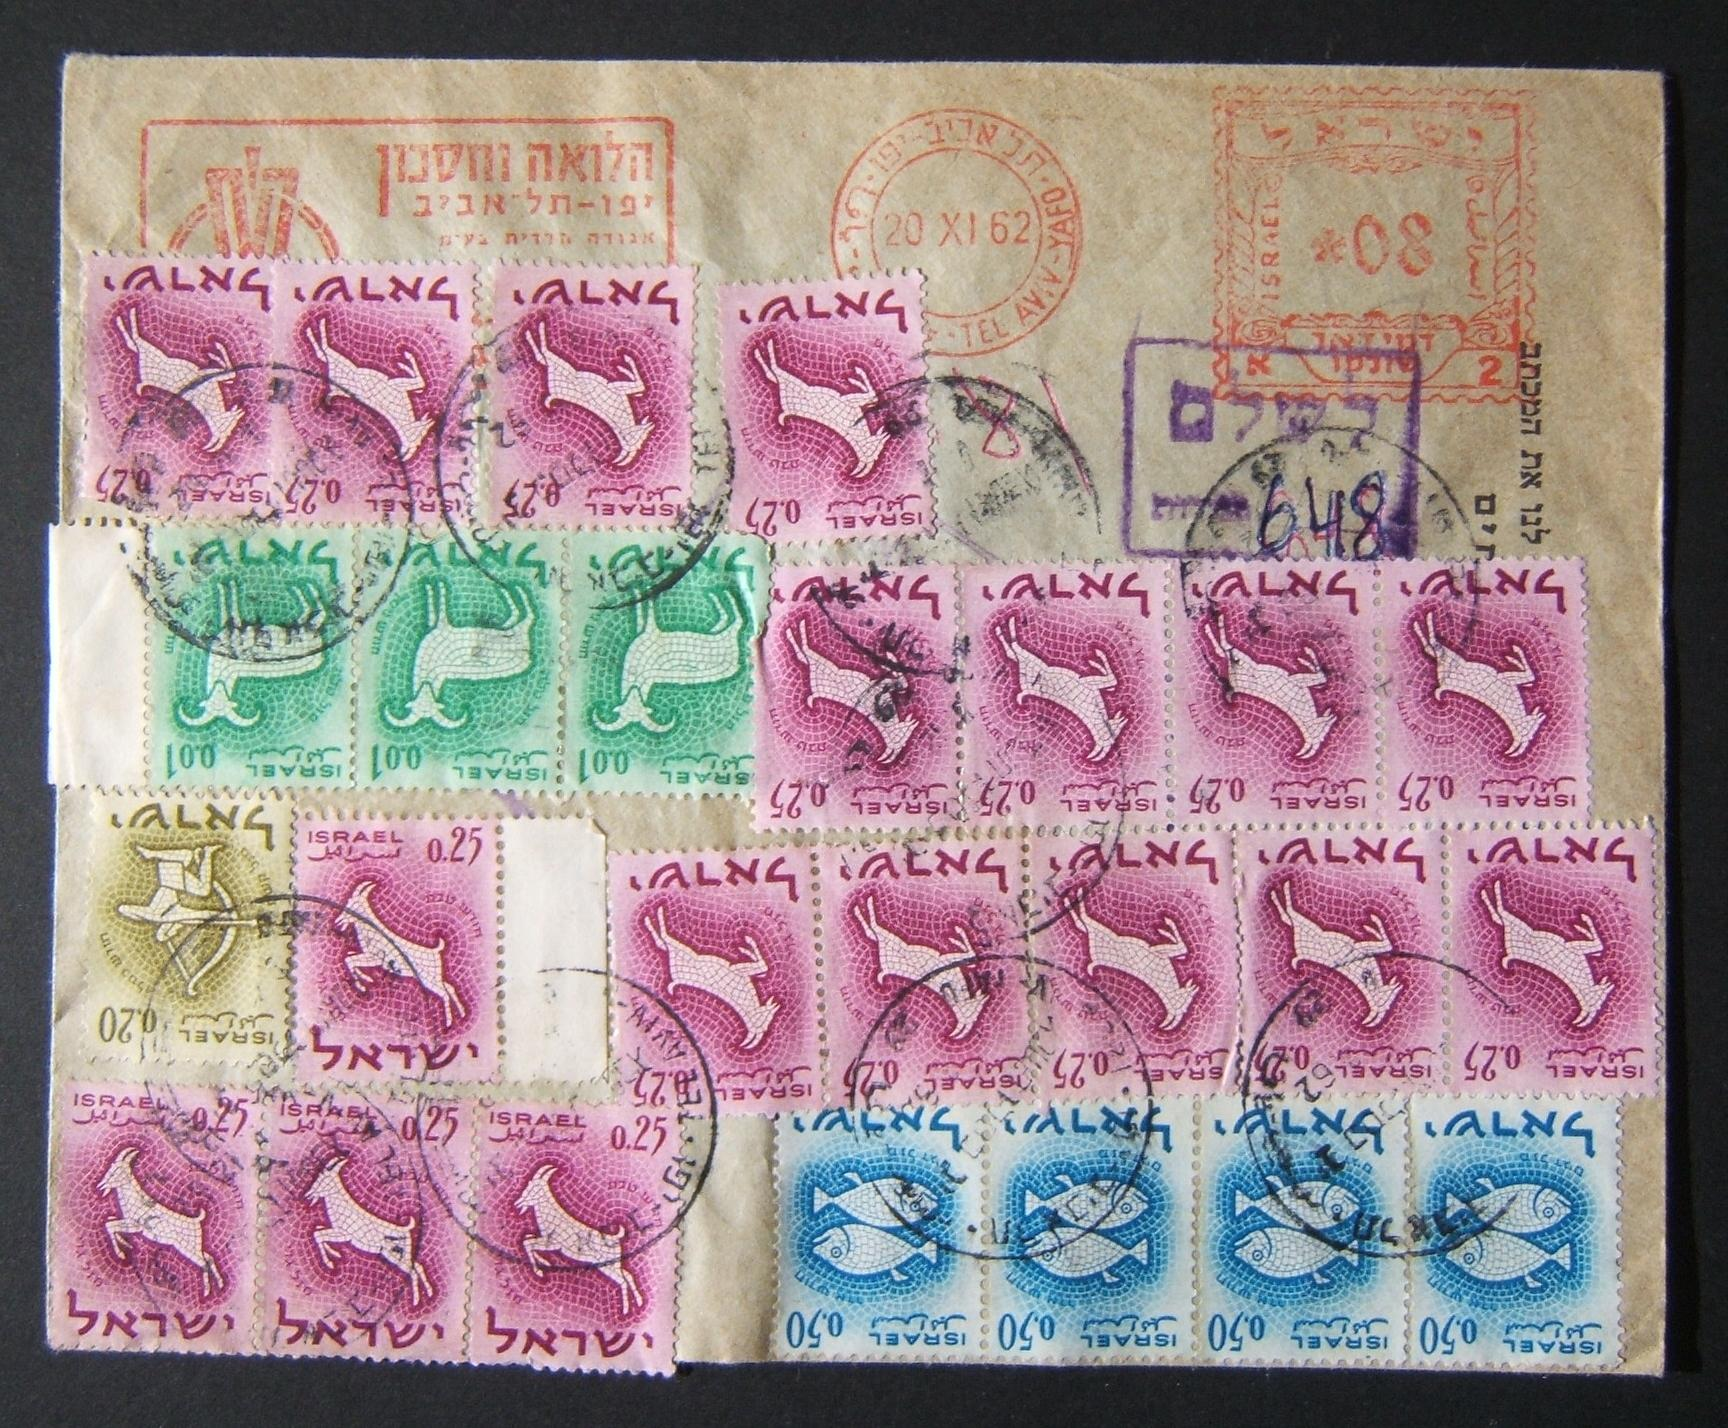 1962 Tel Aviv top of the pile taxed-returned mail for 81 letters using 25 franks